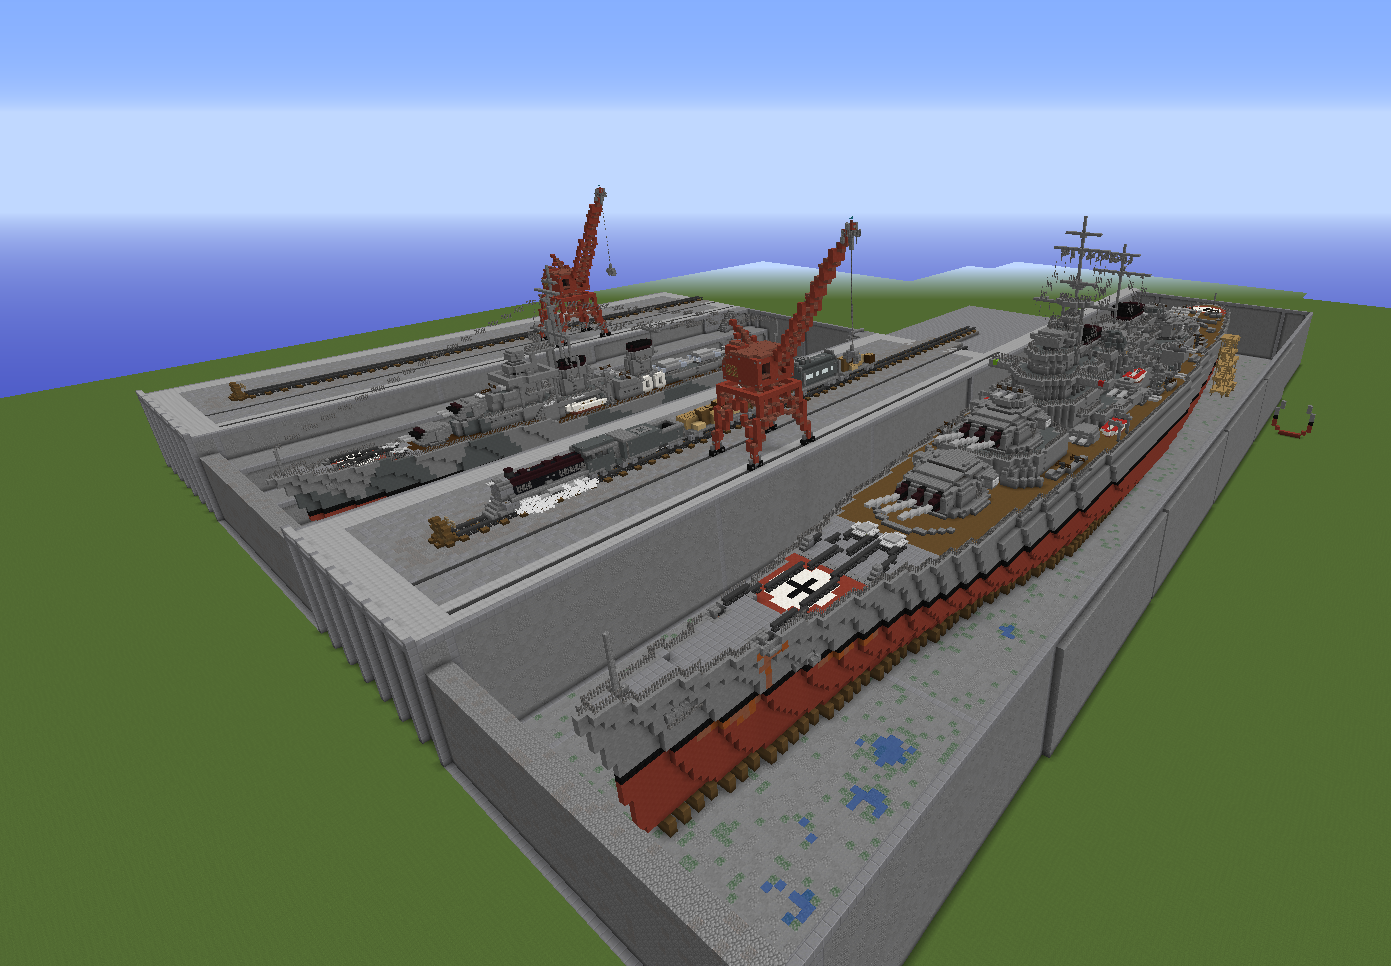 upload_2018-7-14_13-6-27.png